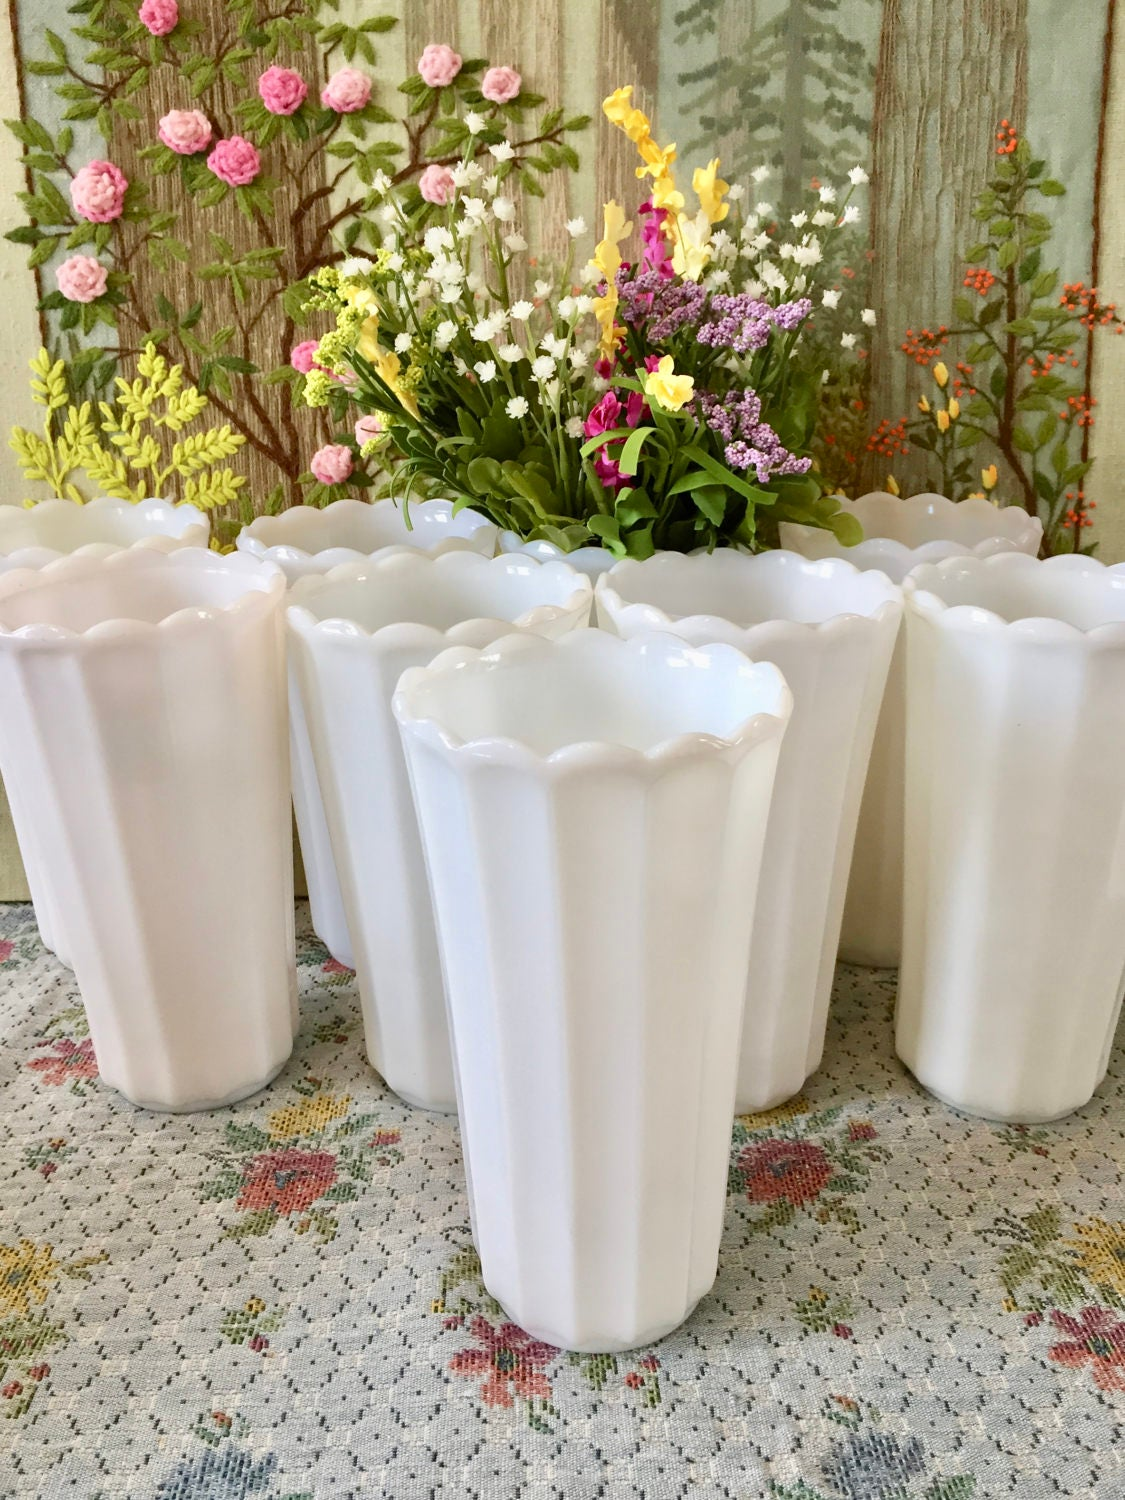 Milk glass vases for wedding centerpiece vases table zoom reviewsmspy